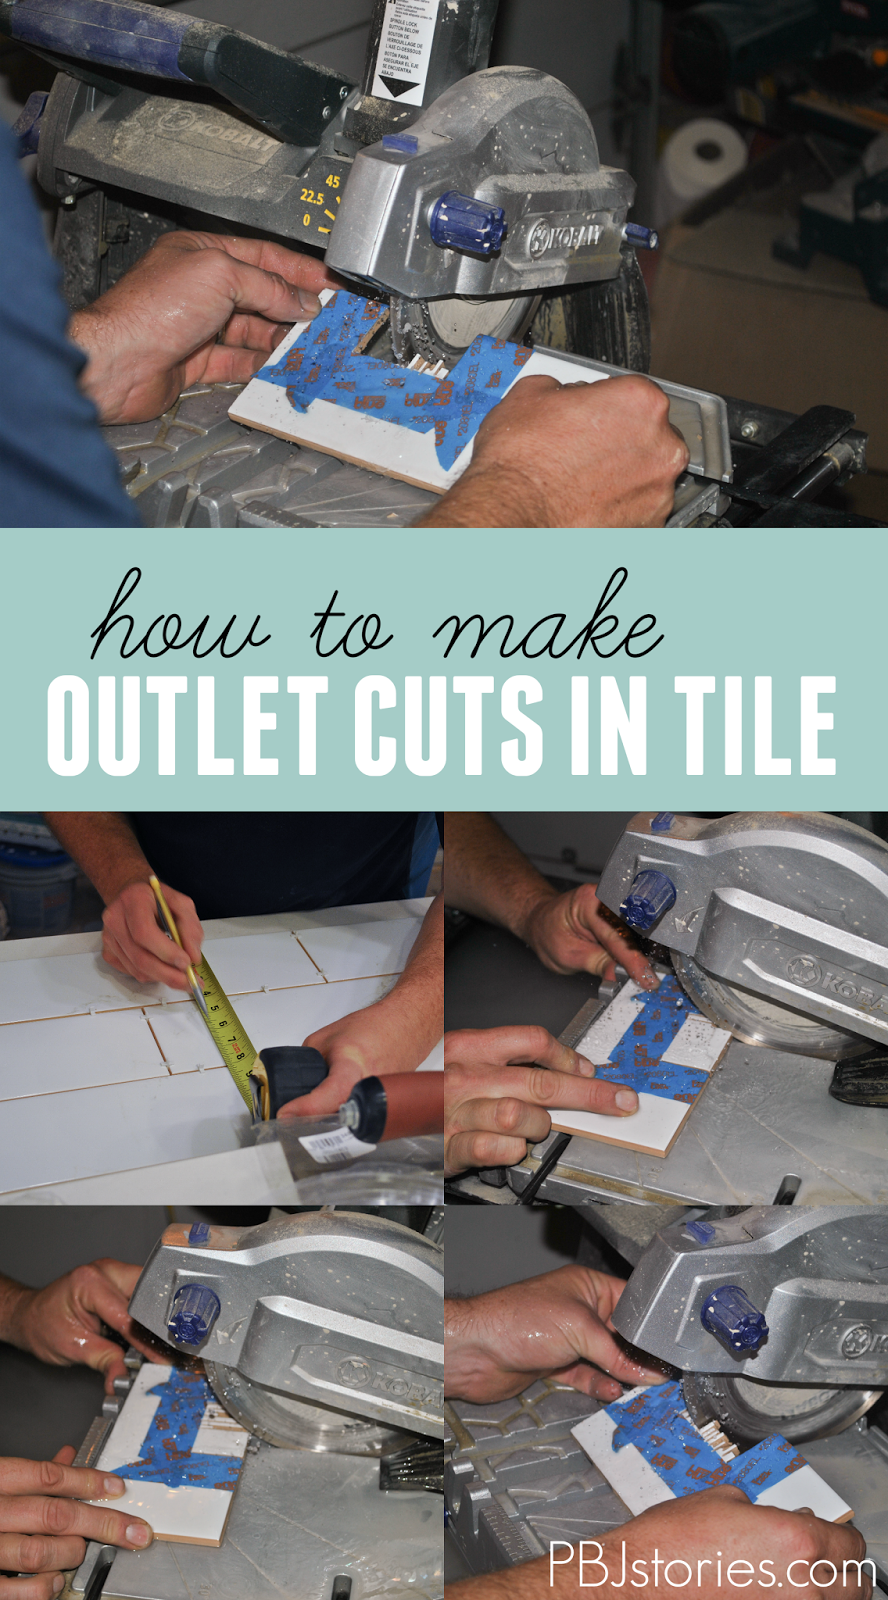 How to cut backsplash tiles for outlets and light switches how to cut backsplash tiles for outlets and light switches pbjstories doublecrazyfo Images